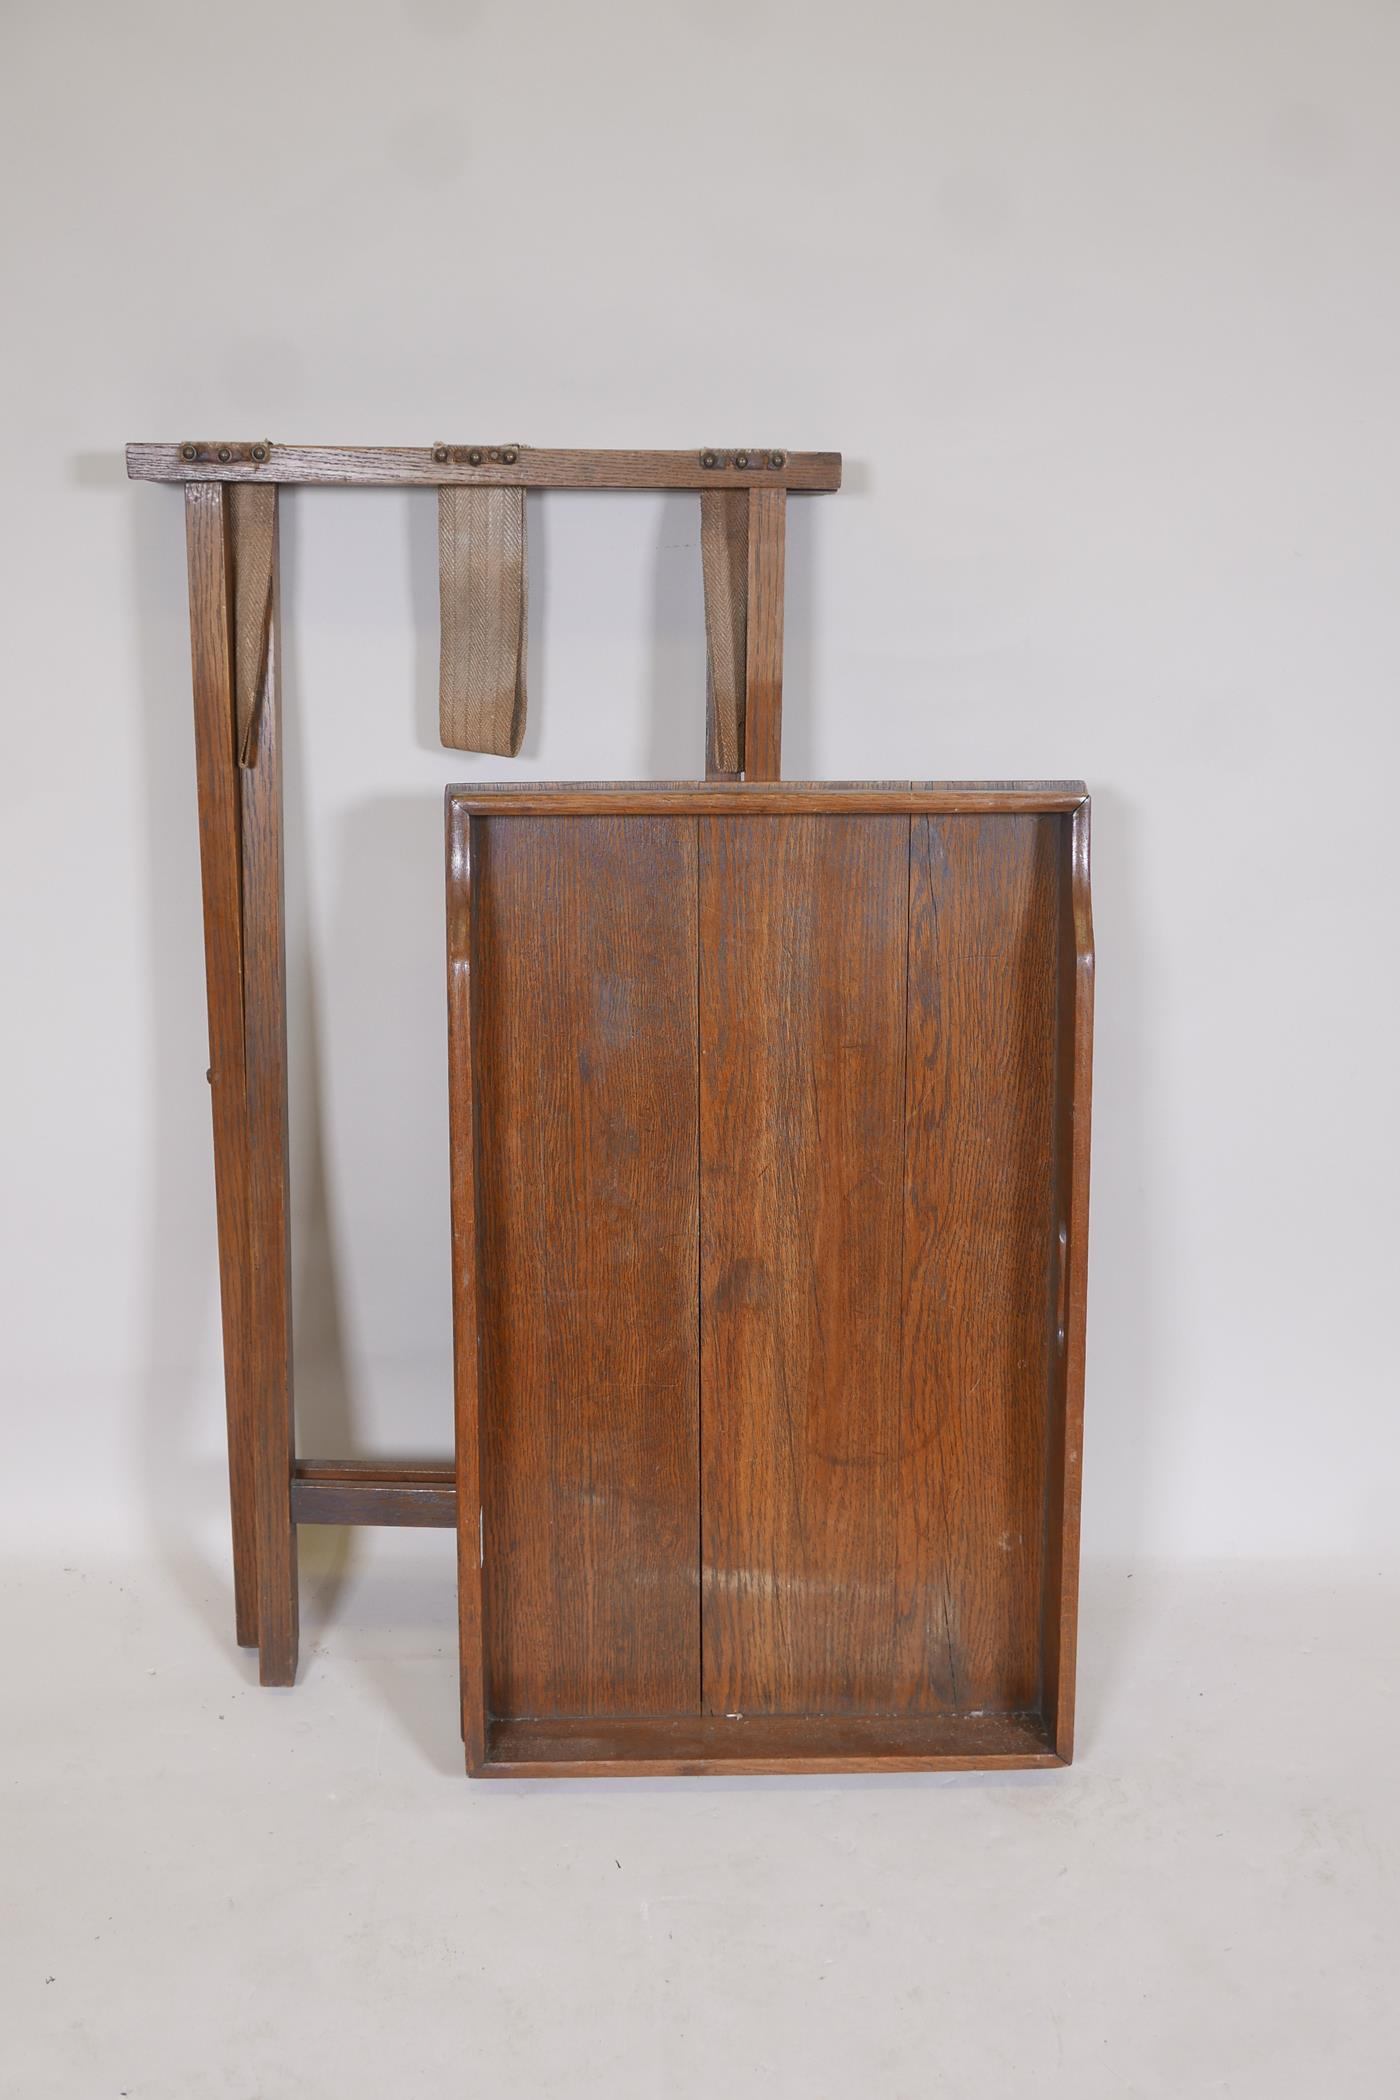 """A C19th oak butlers tray on stand, 33"""" x 27"""" x 17"""" - Image 2 of 2"""